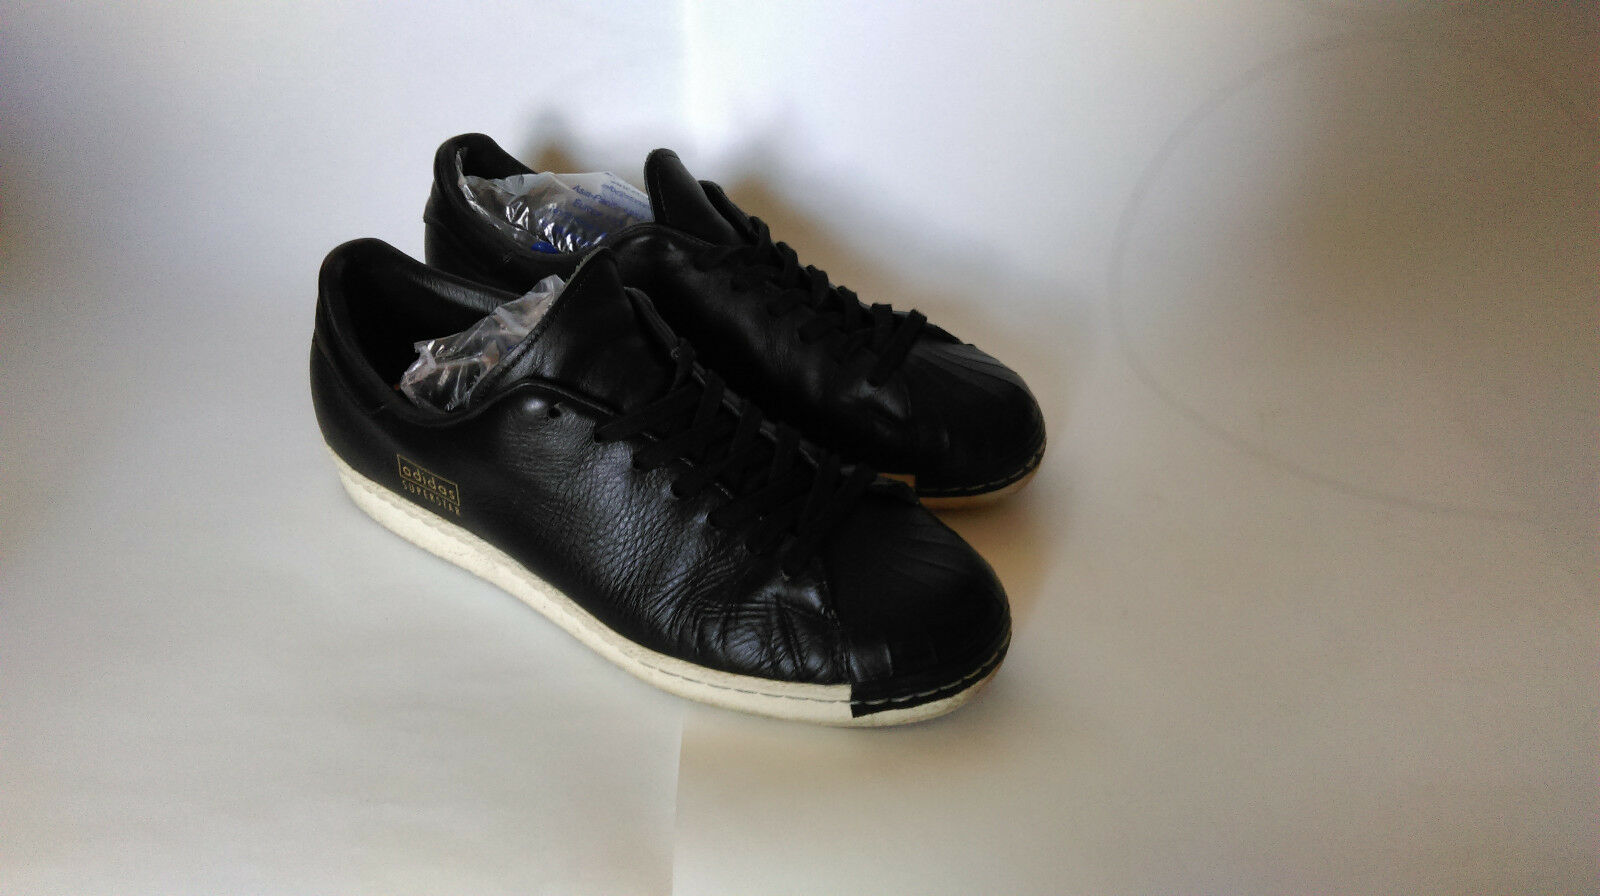 Adidas Superstar 80s Clean trainers - UK9 / EU43 1/3 - Black / Rare! The latest discount shoes for men and women